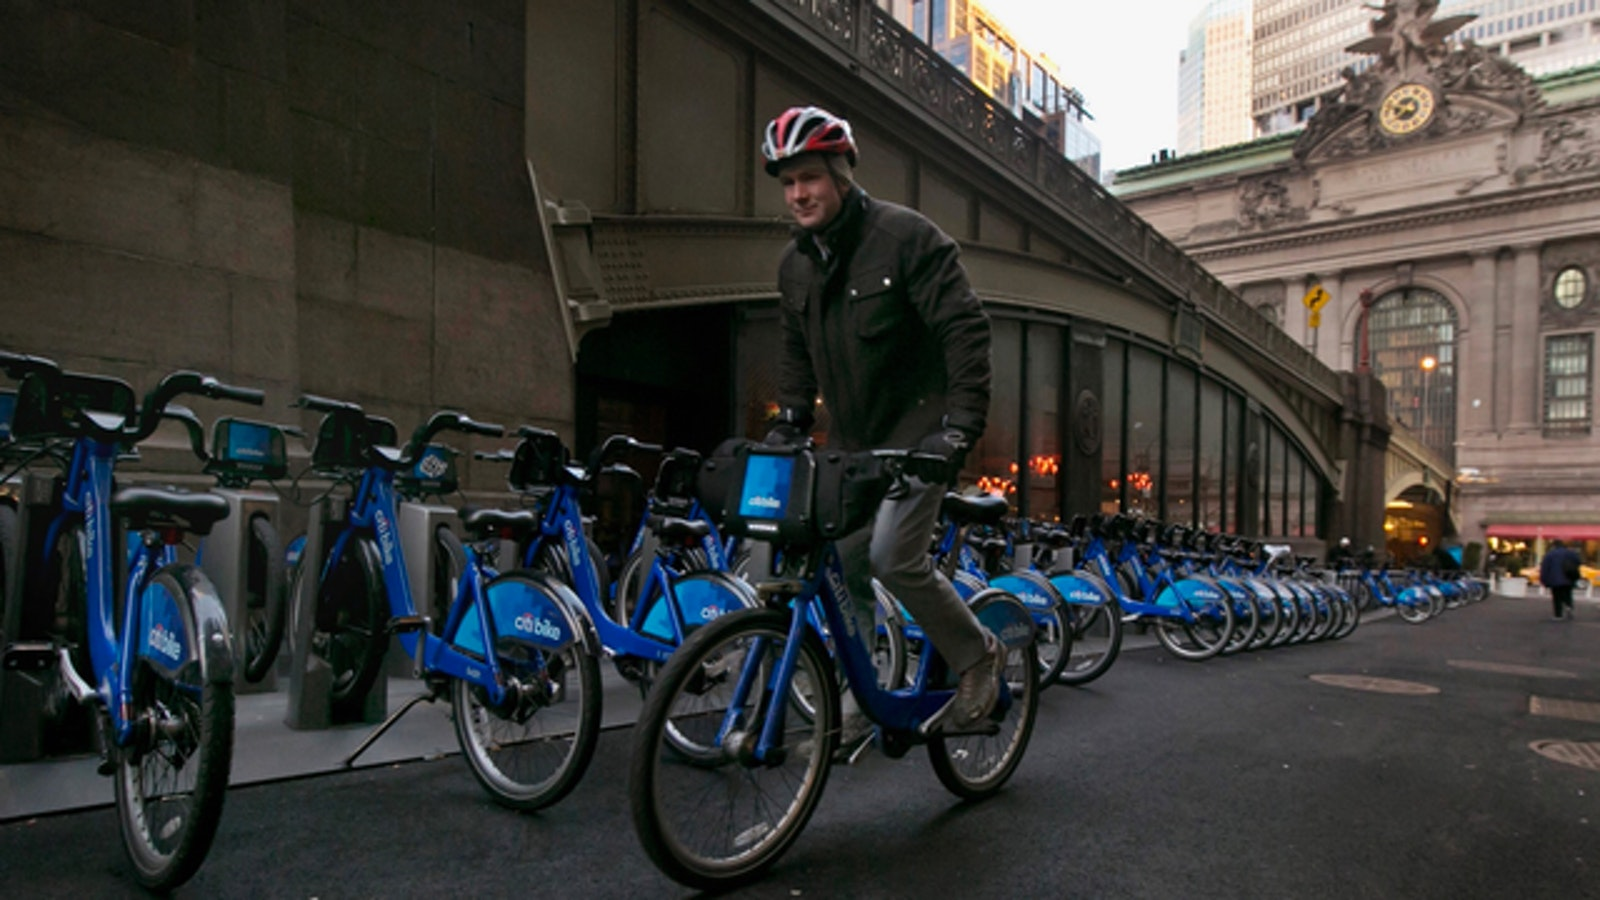 A man rode a Citi Bike, which is now owned by Lyft, near New York City's Grand Central Terminal in early 2015. Photo: AP